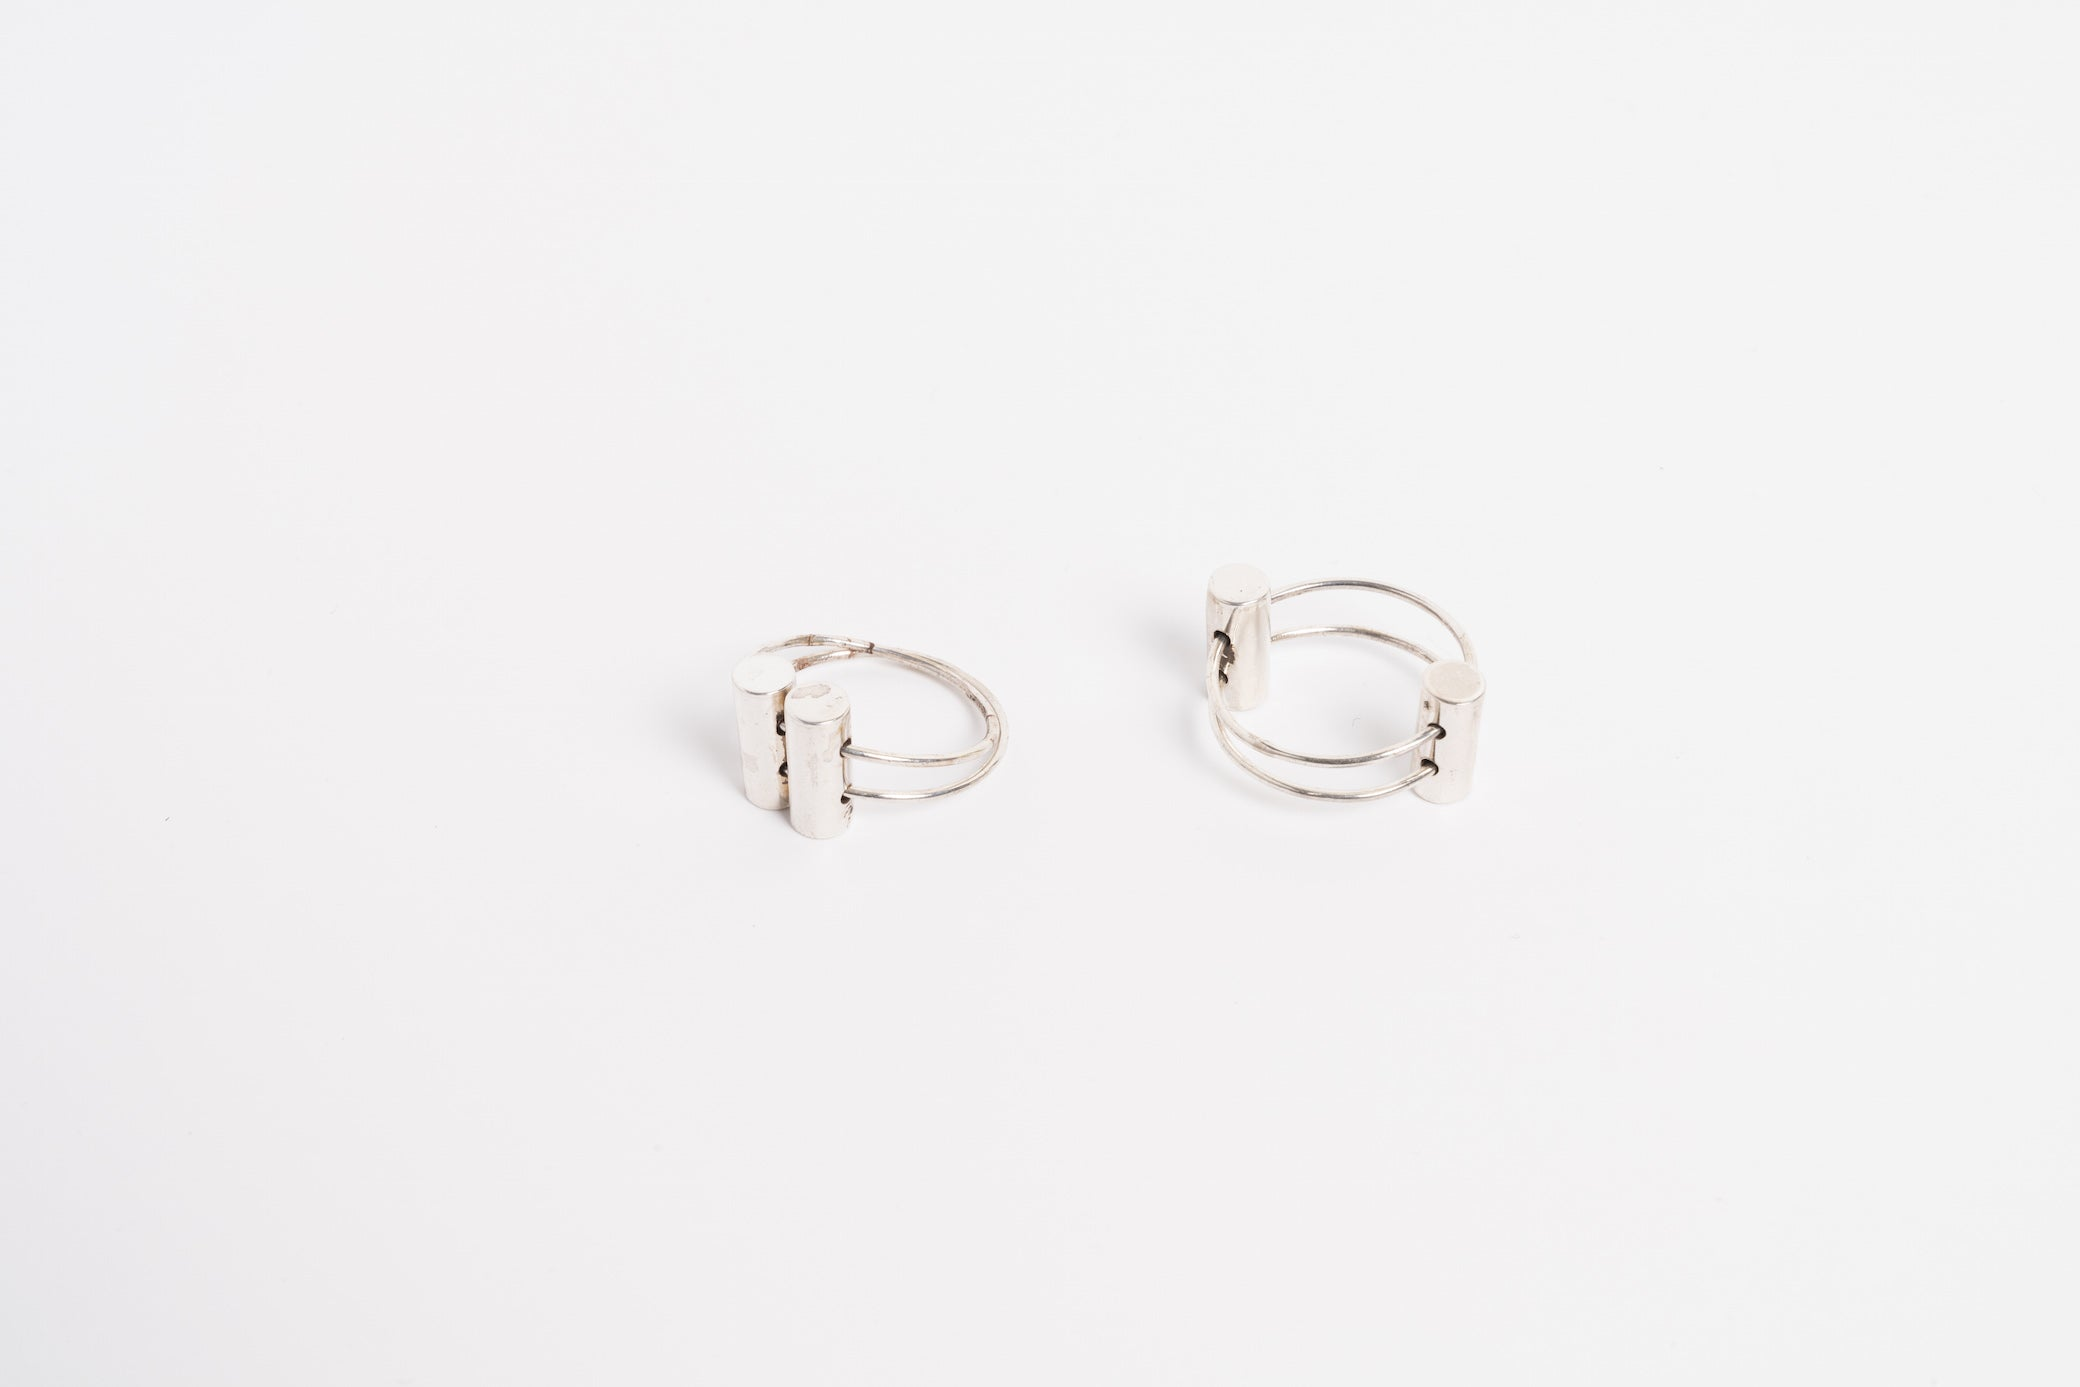 Double Tube Twist Ring